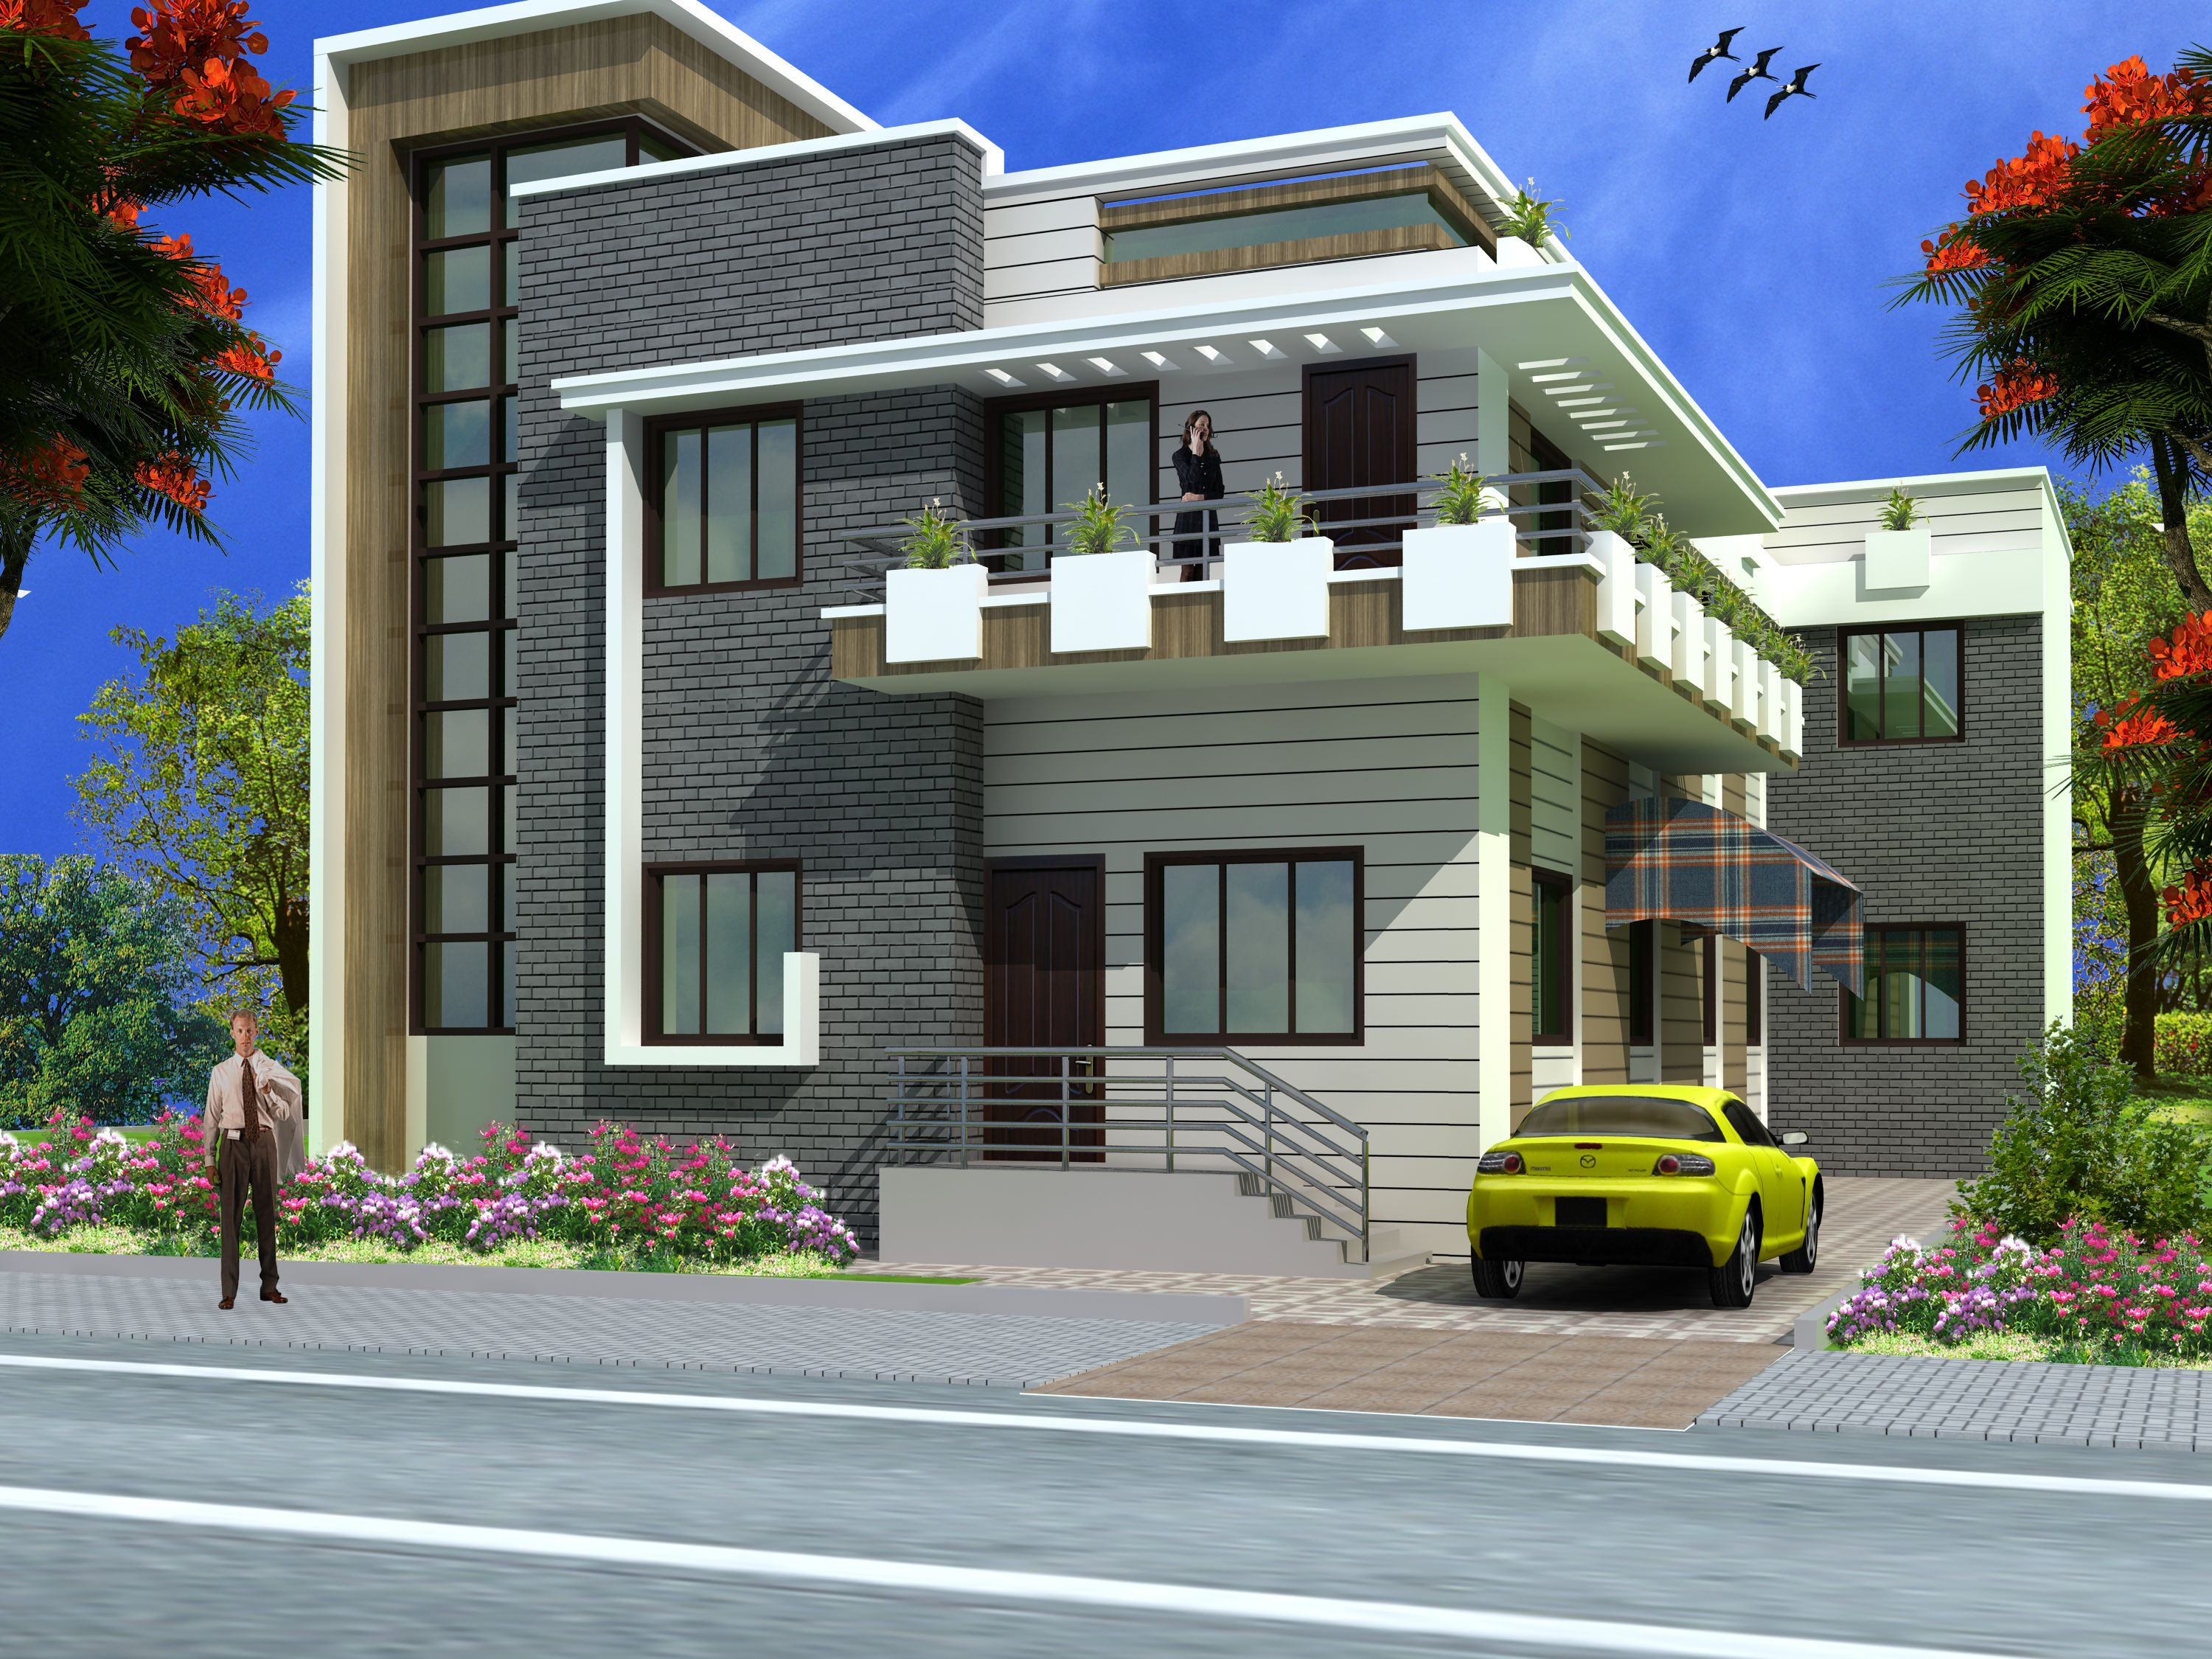 Modern duplex 2 floor house design click on this link for Home front design model